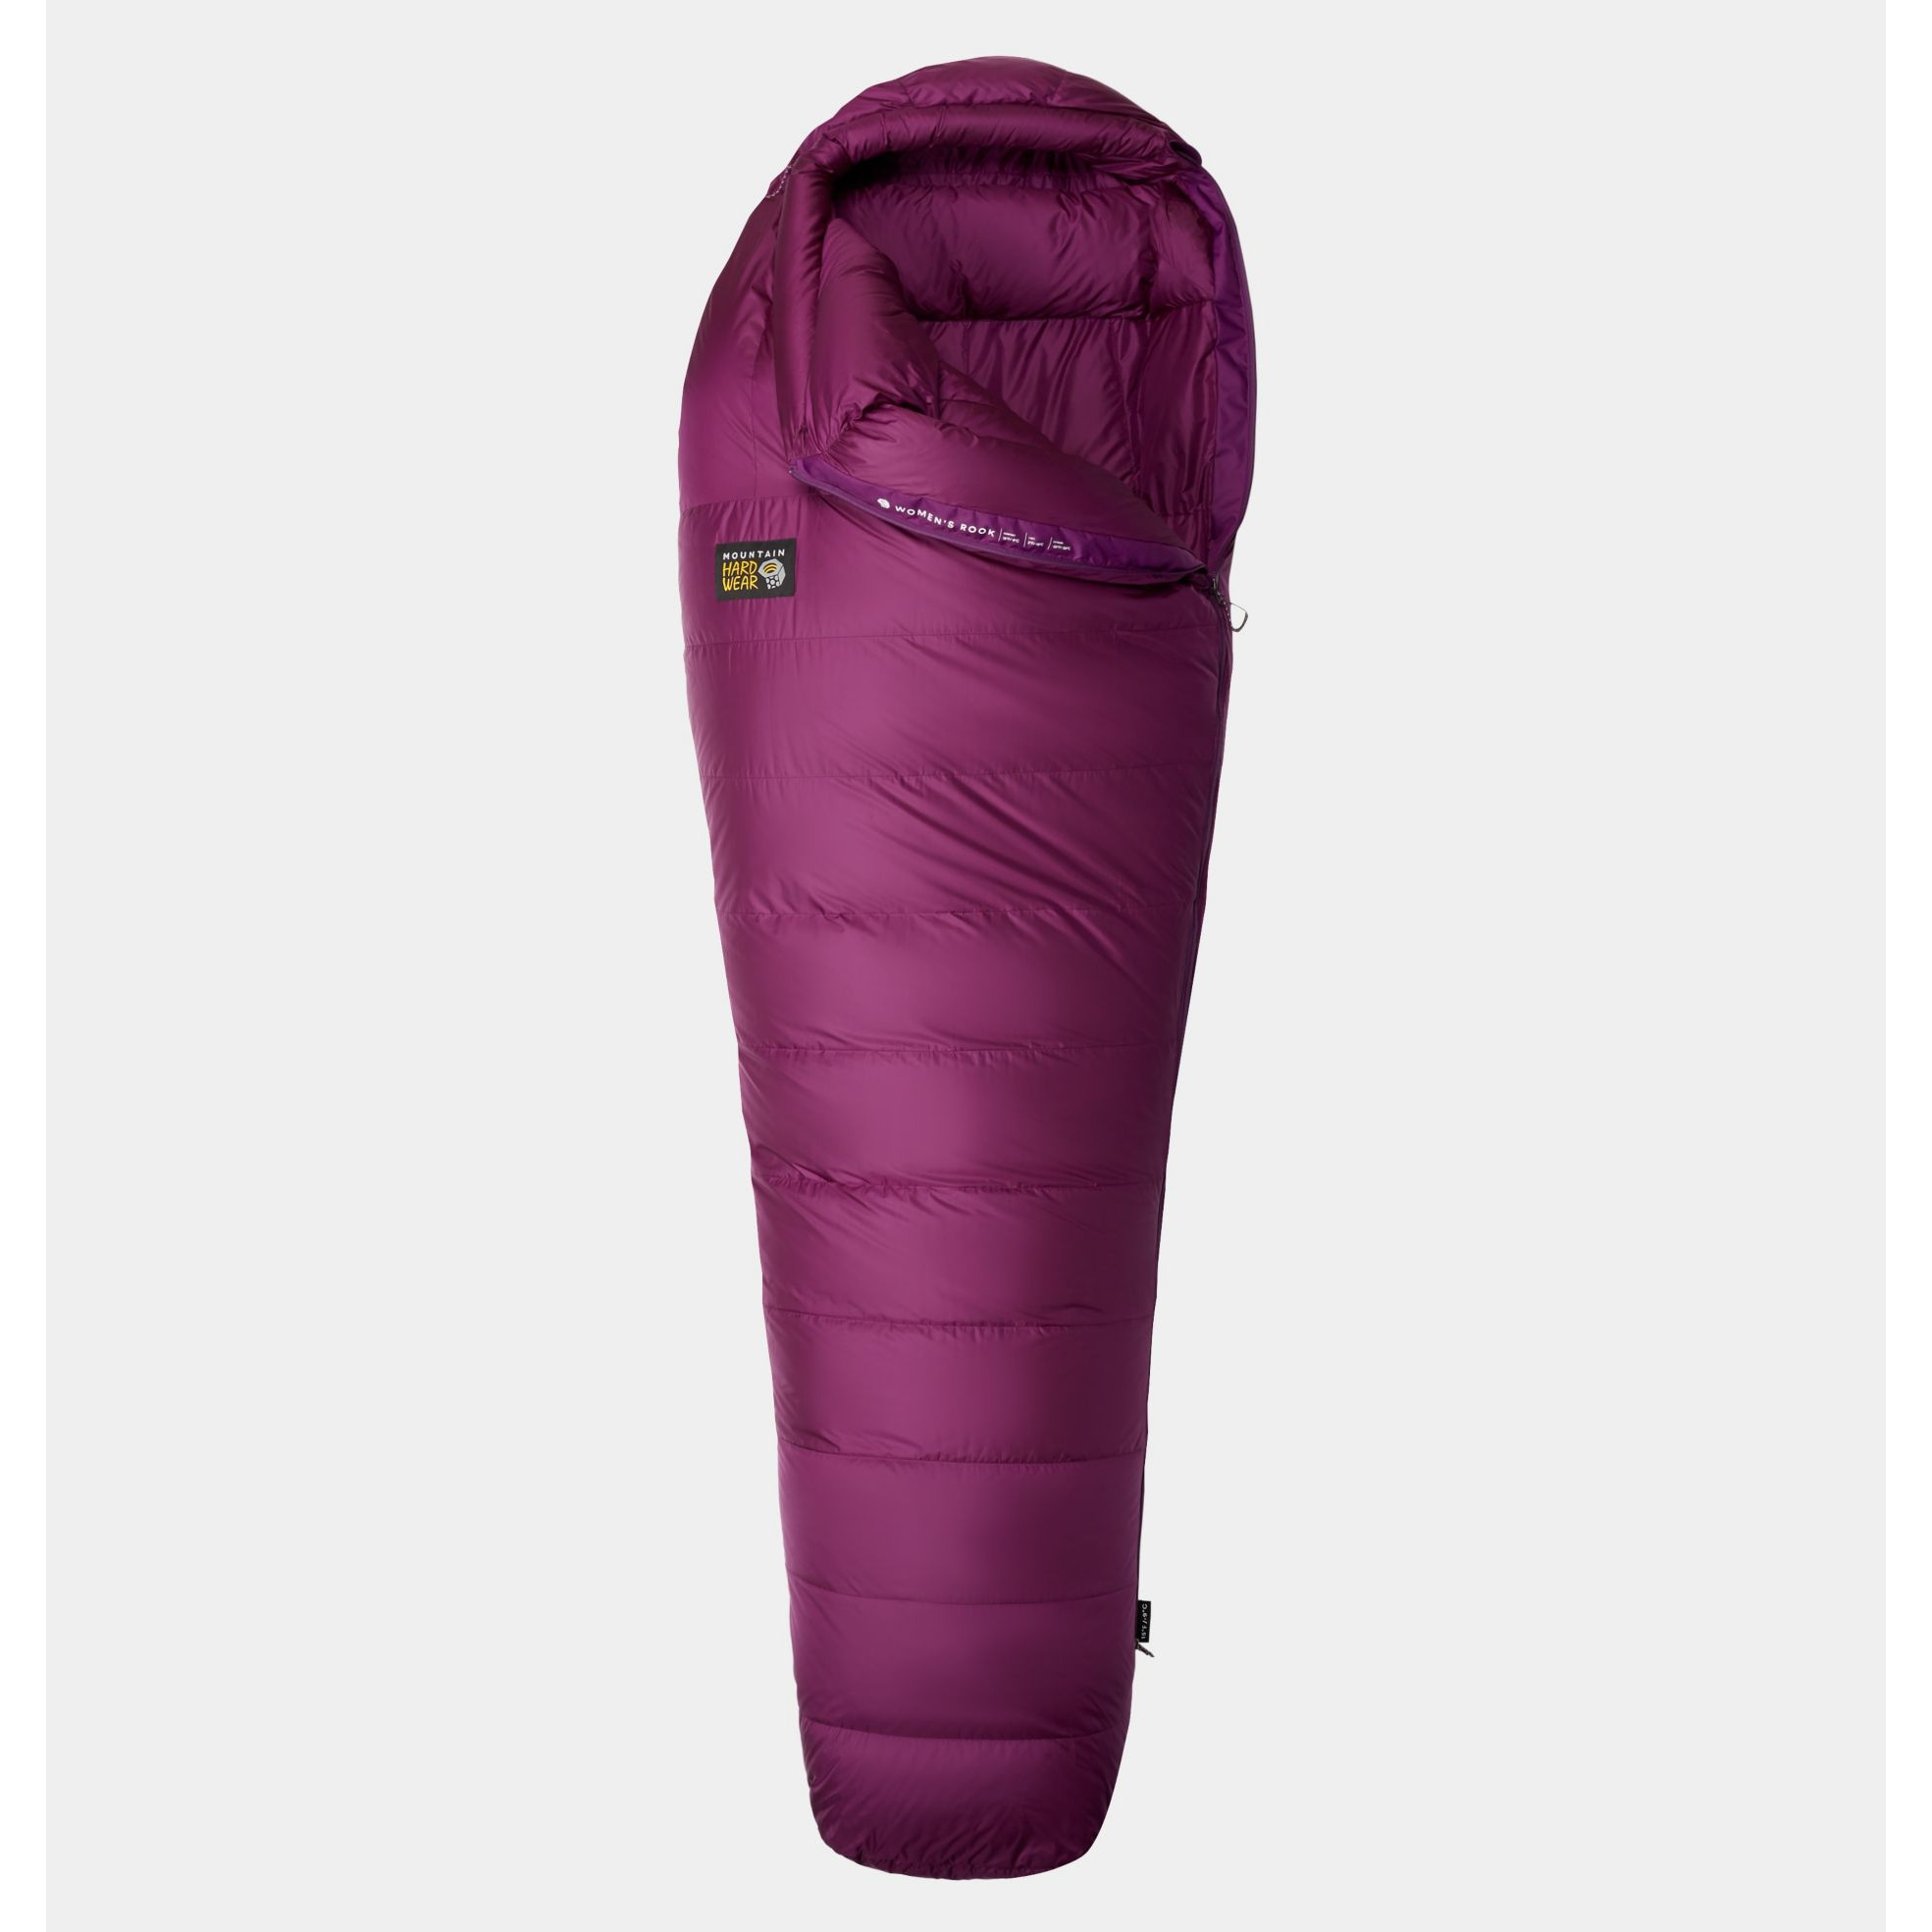 Rook 15 Regular Sleeping Bag - Cosmos Purple